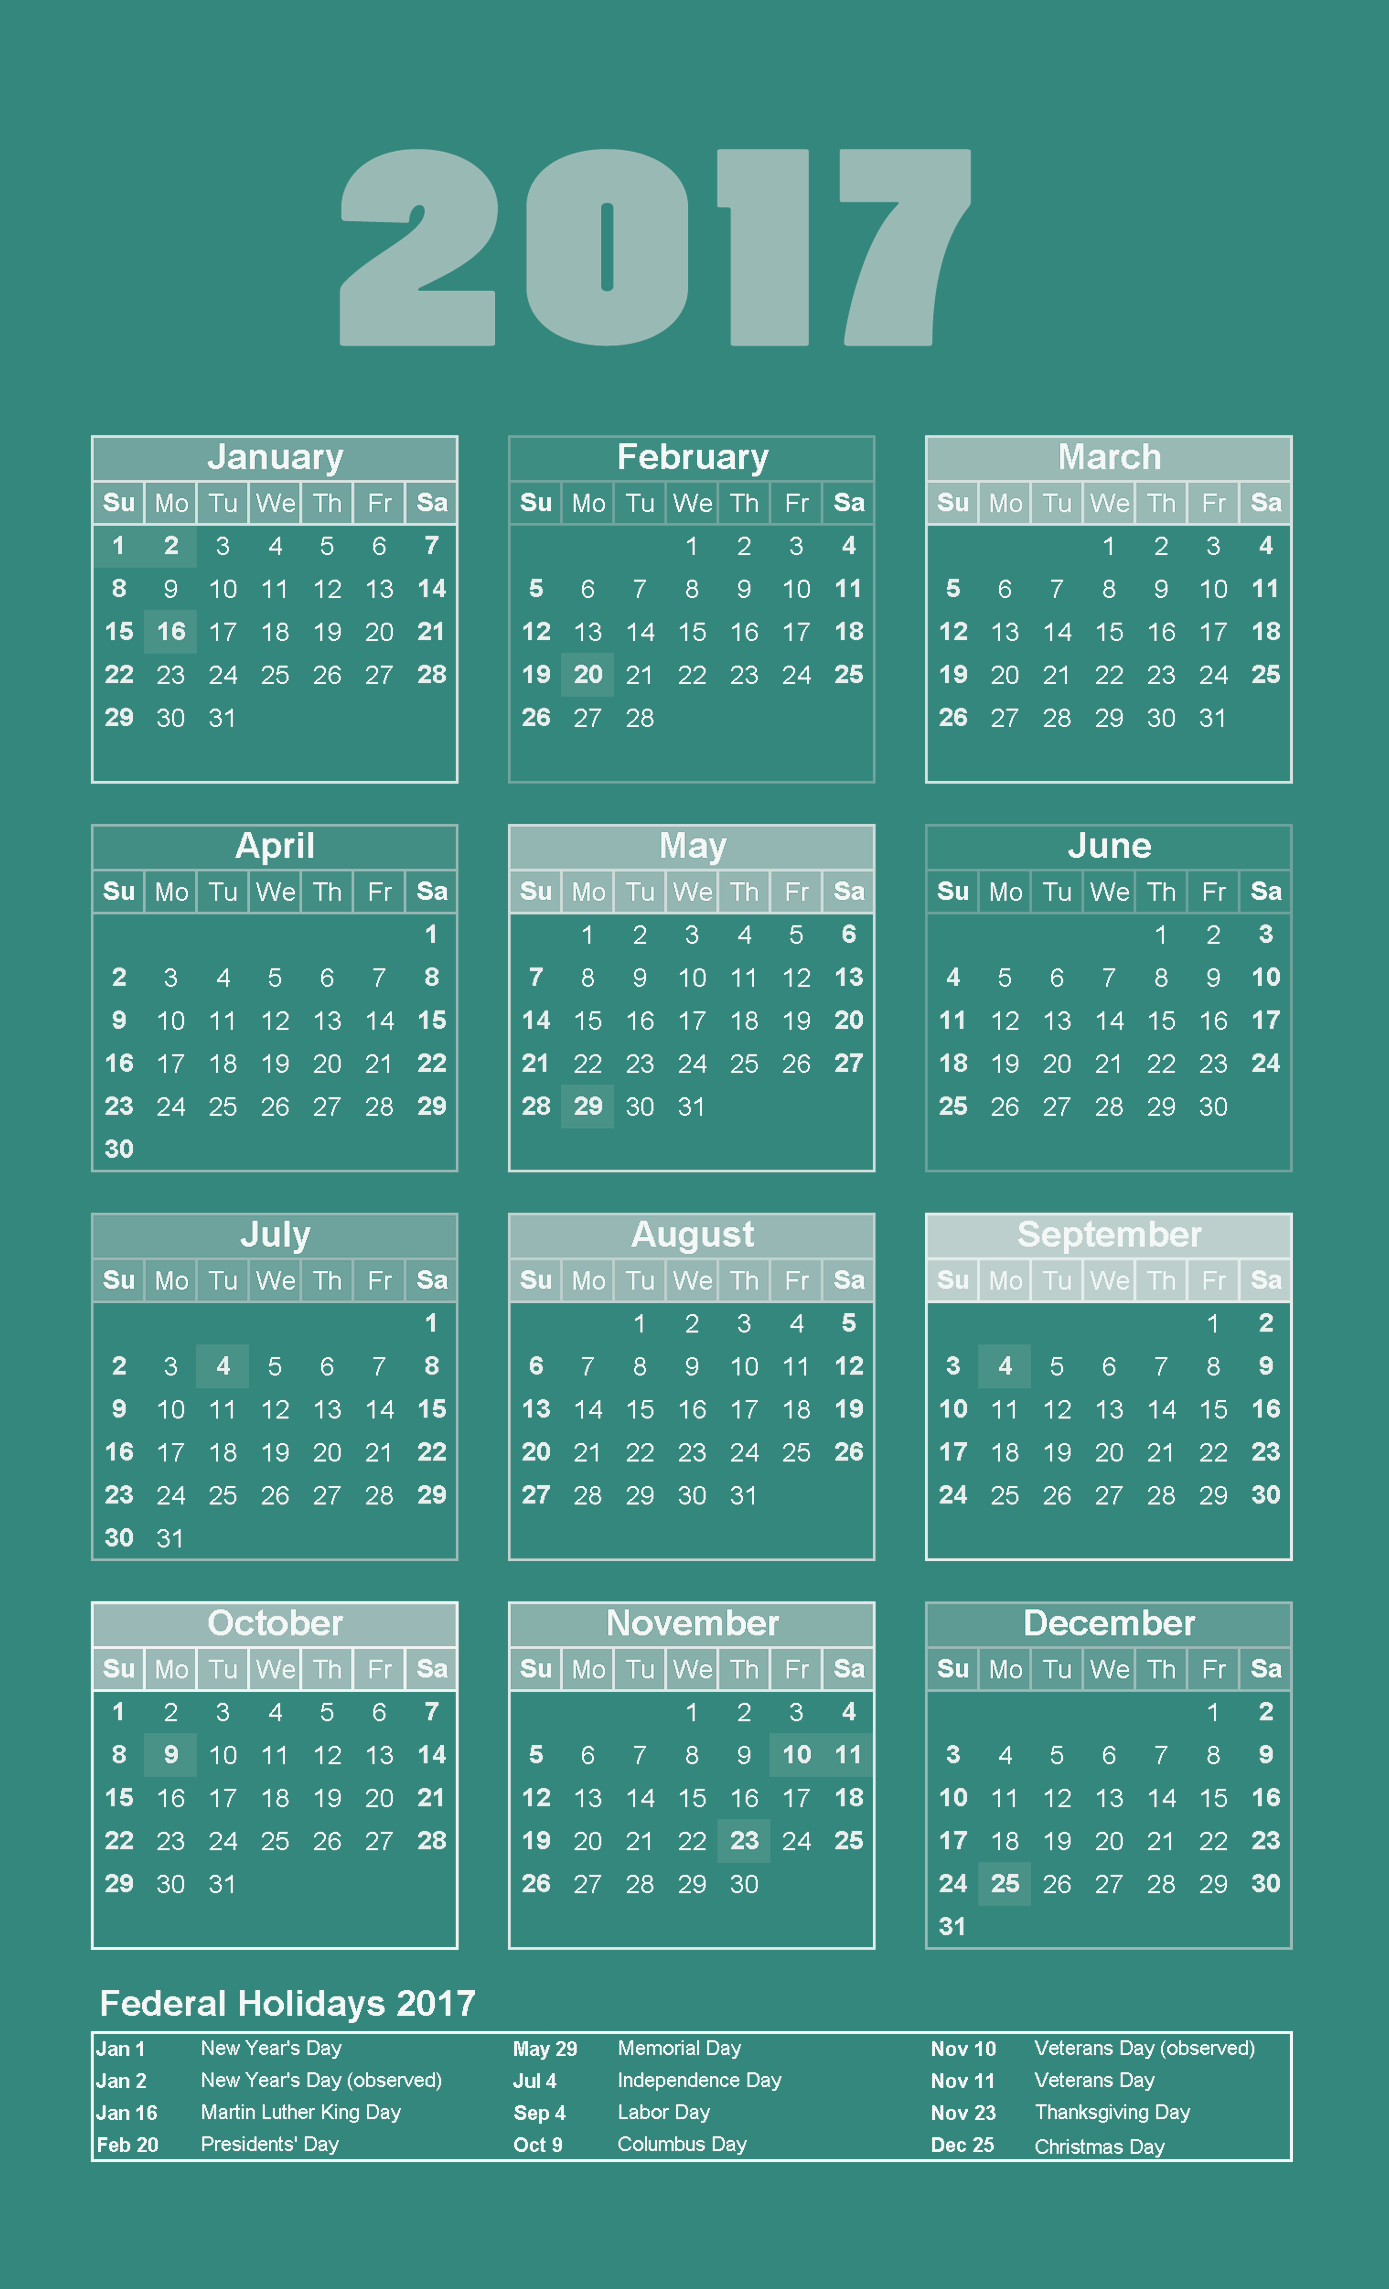 2017 calendar with holidays